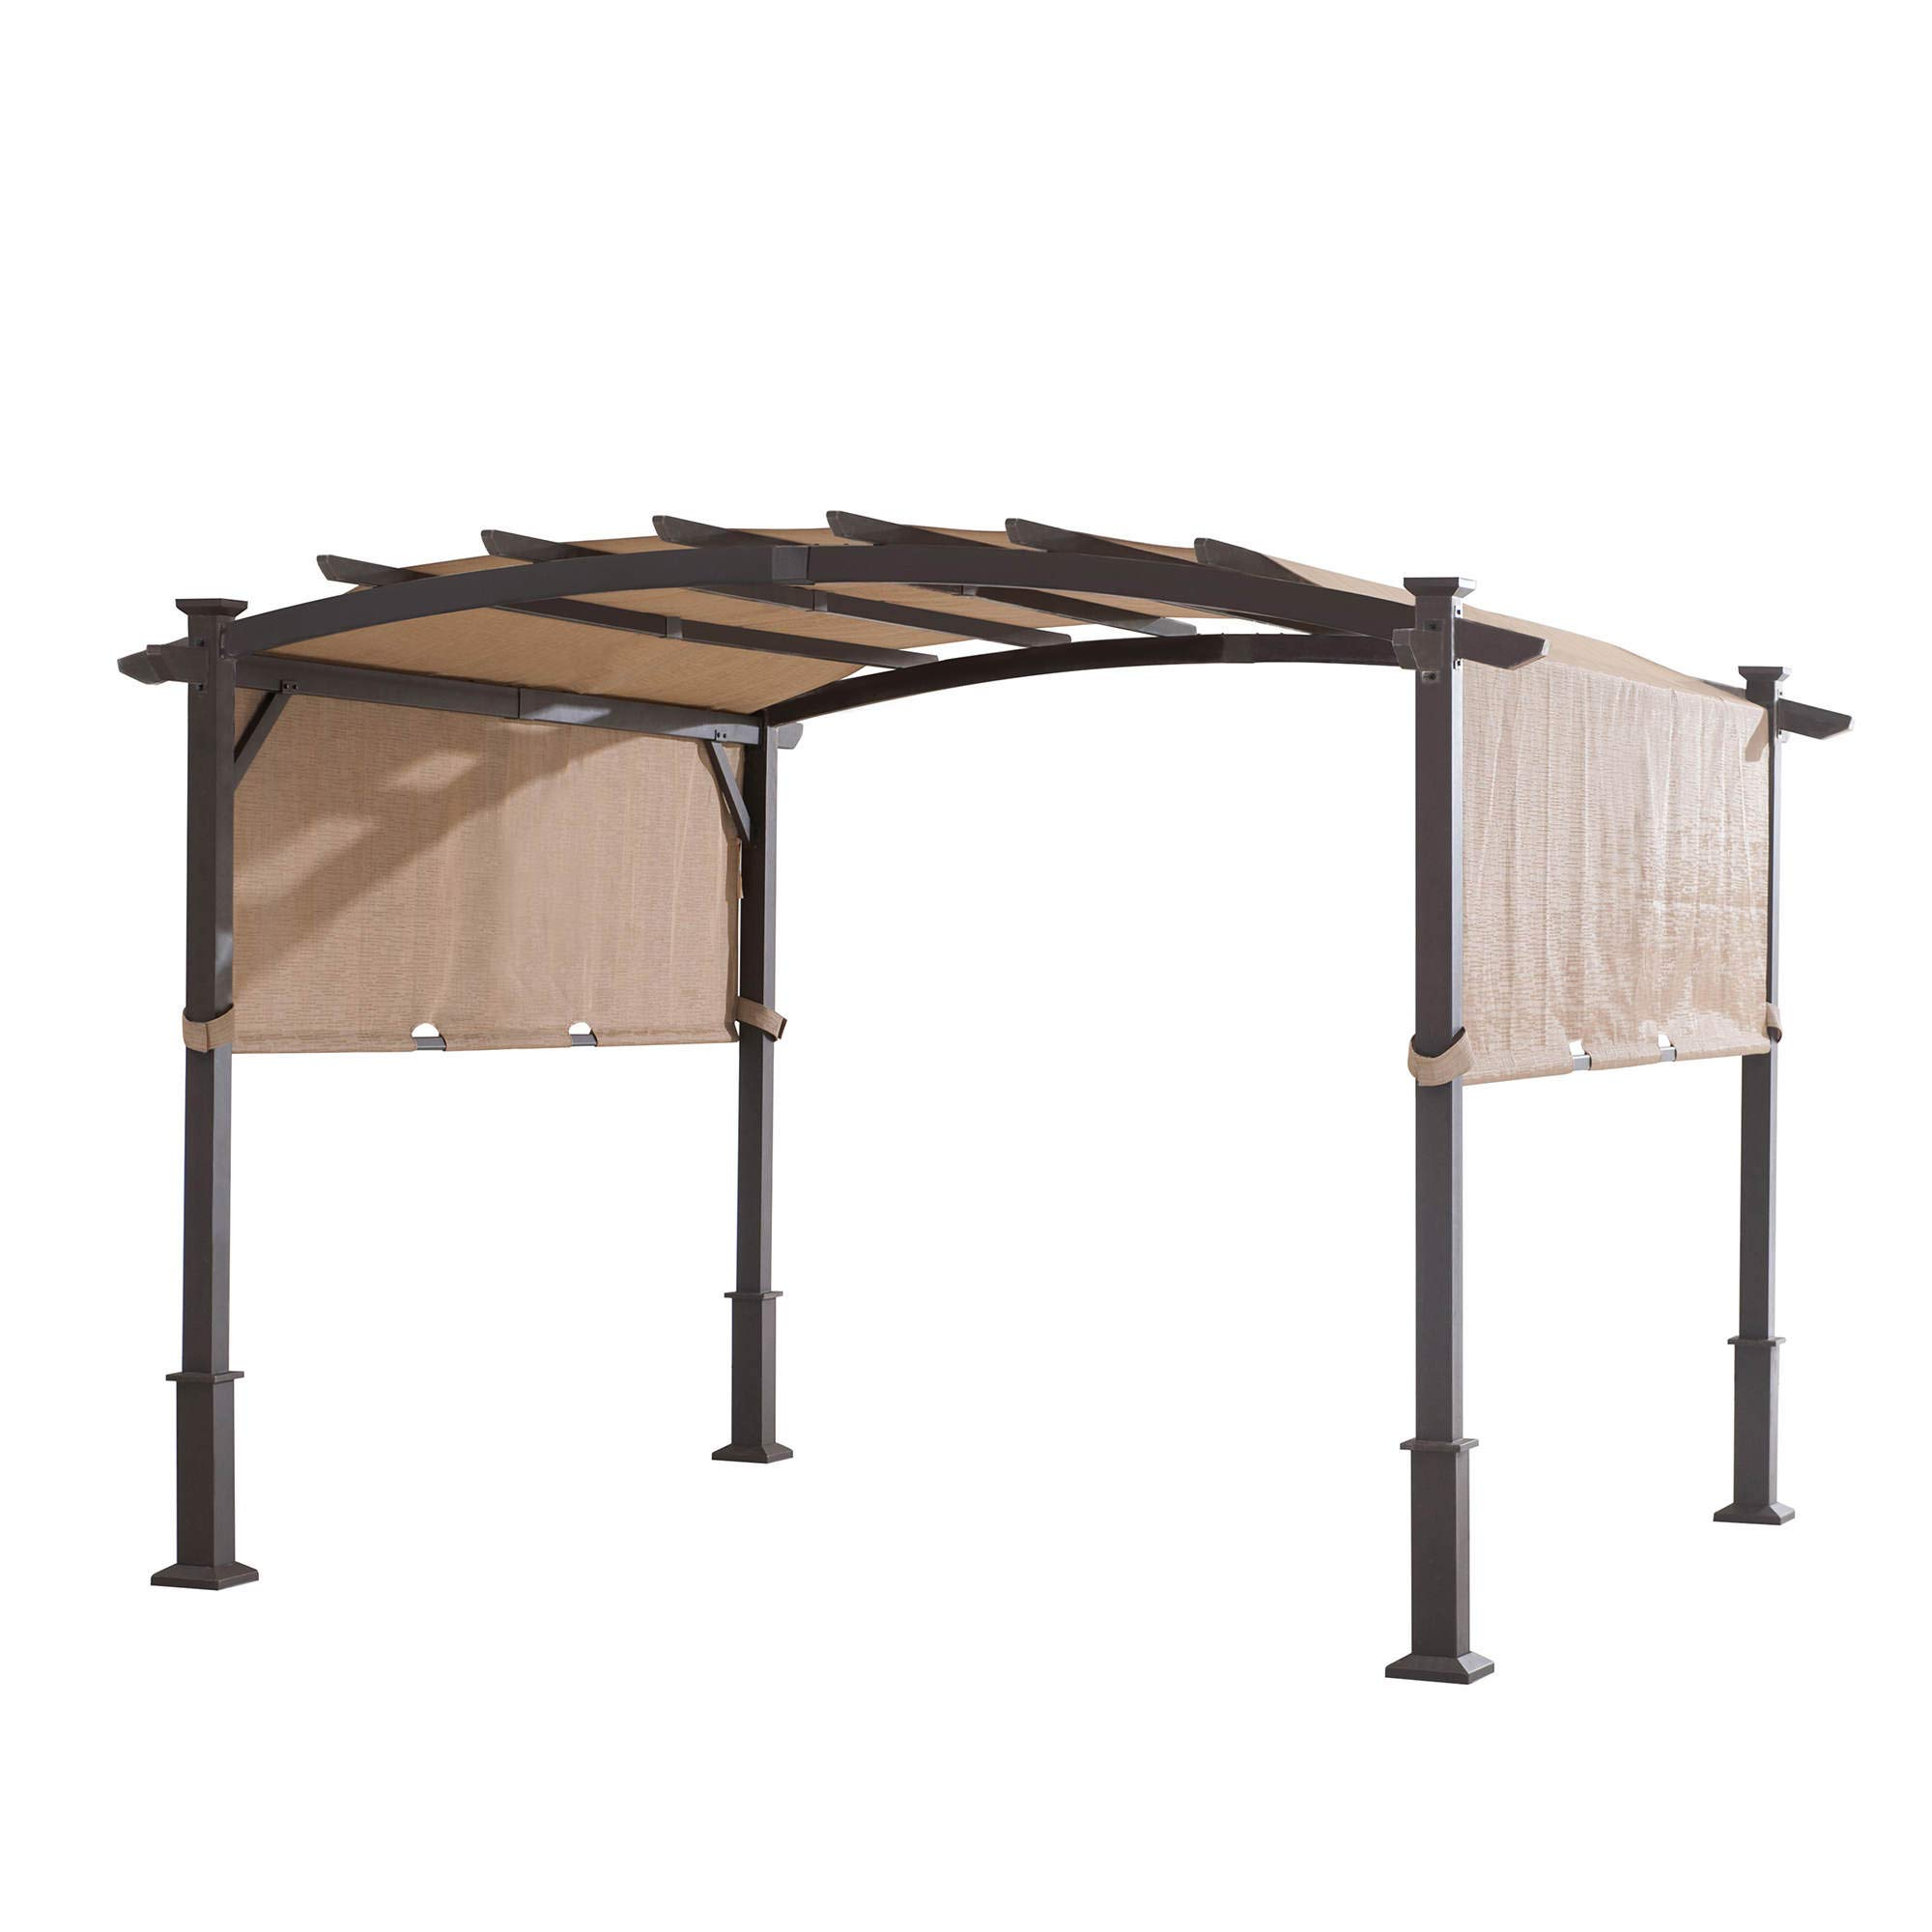 SunVilla 11' x 11' Metal Arched PERGOLA w/Sling Fabric Retractable Fabric Canopy Roof